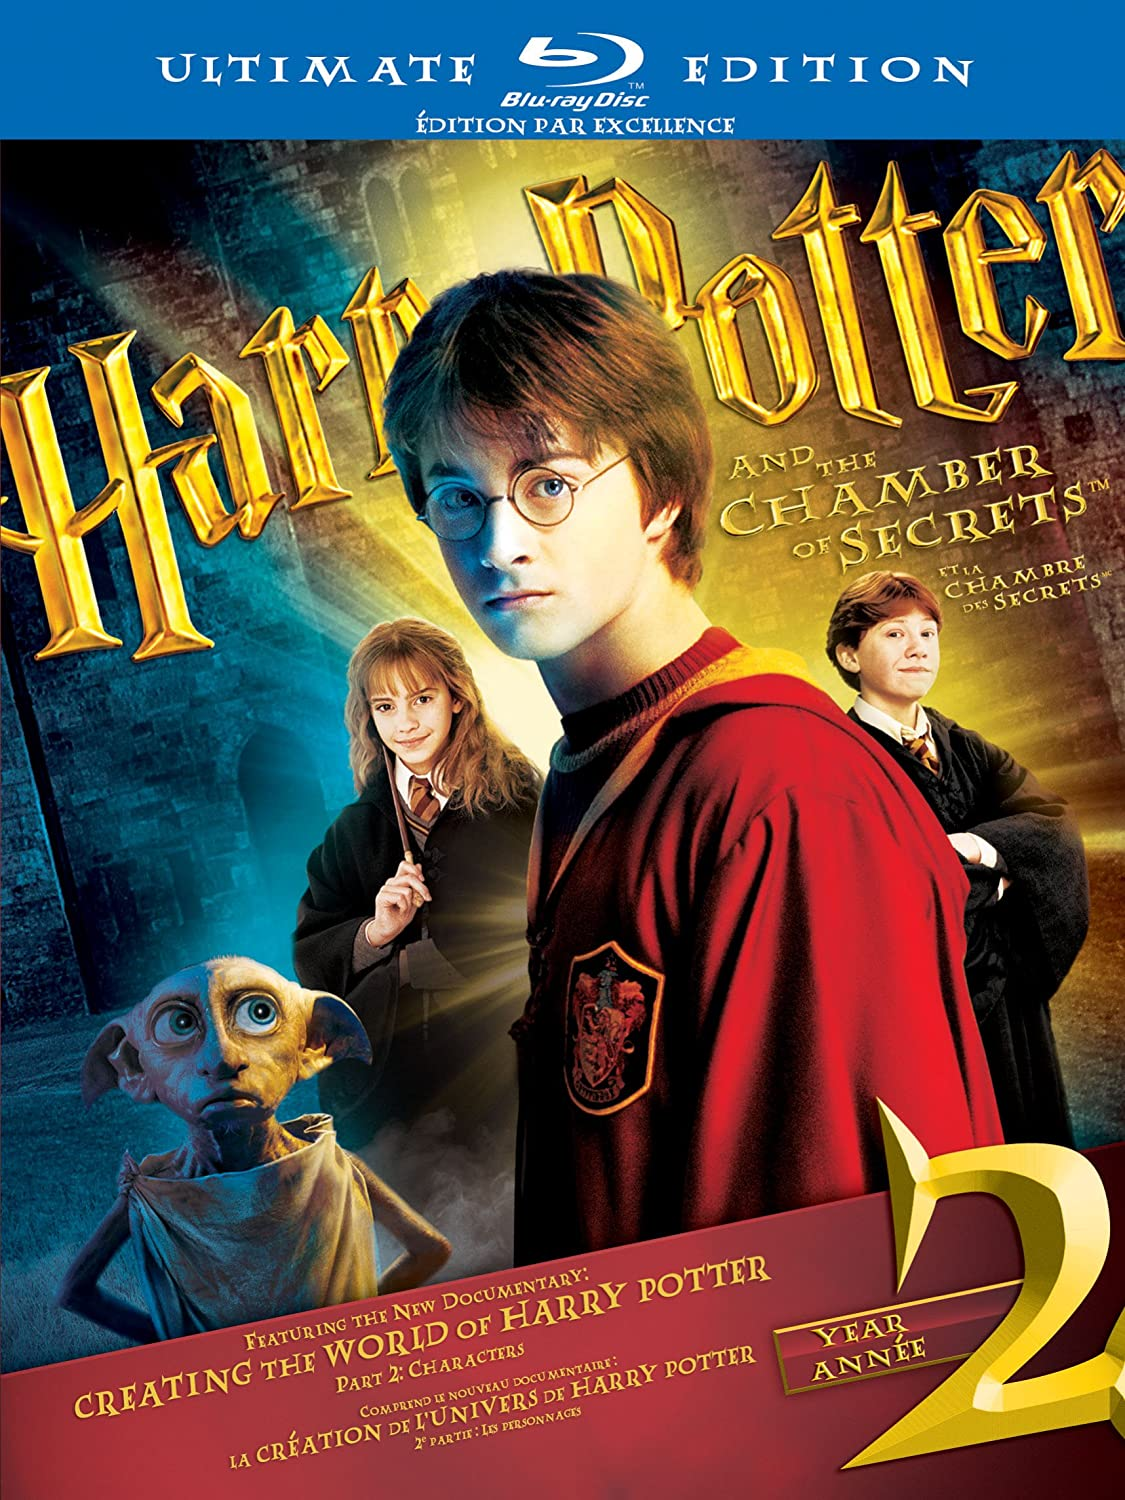 Amazon Com Harry Potter And The Chamber Of Secrets Ultimate Collector S Edition Blu Ray Movies Tv